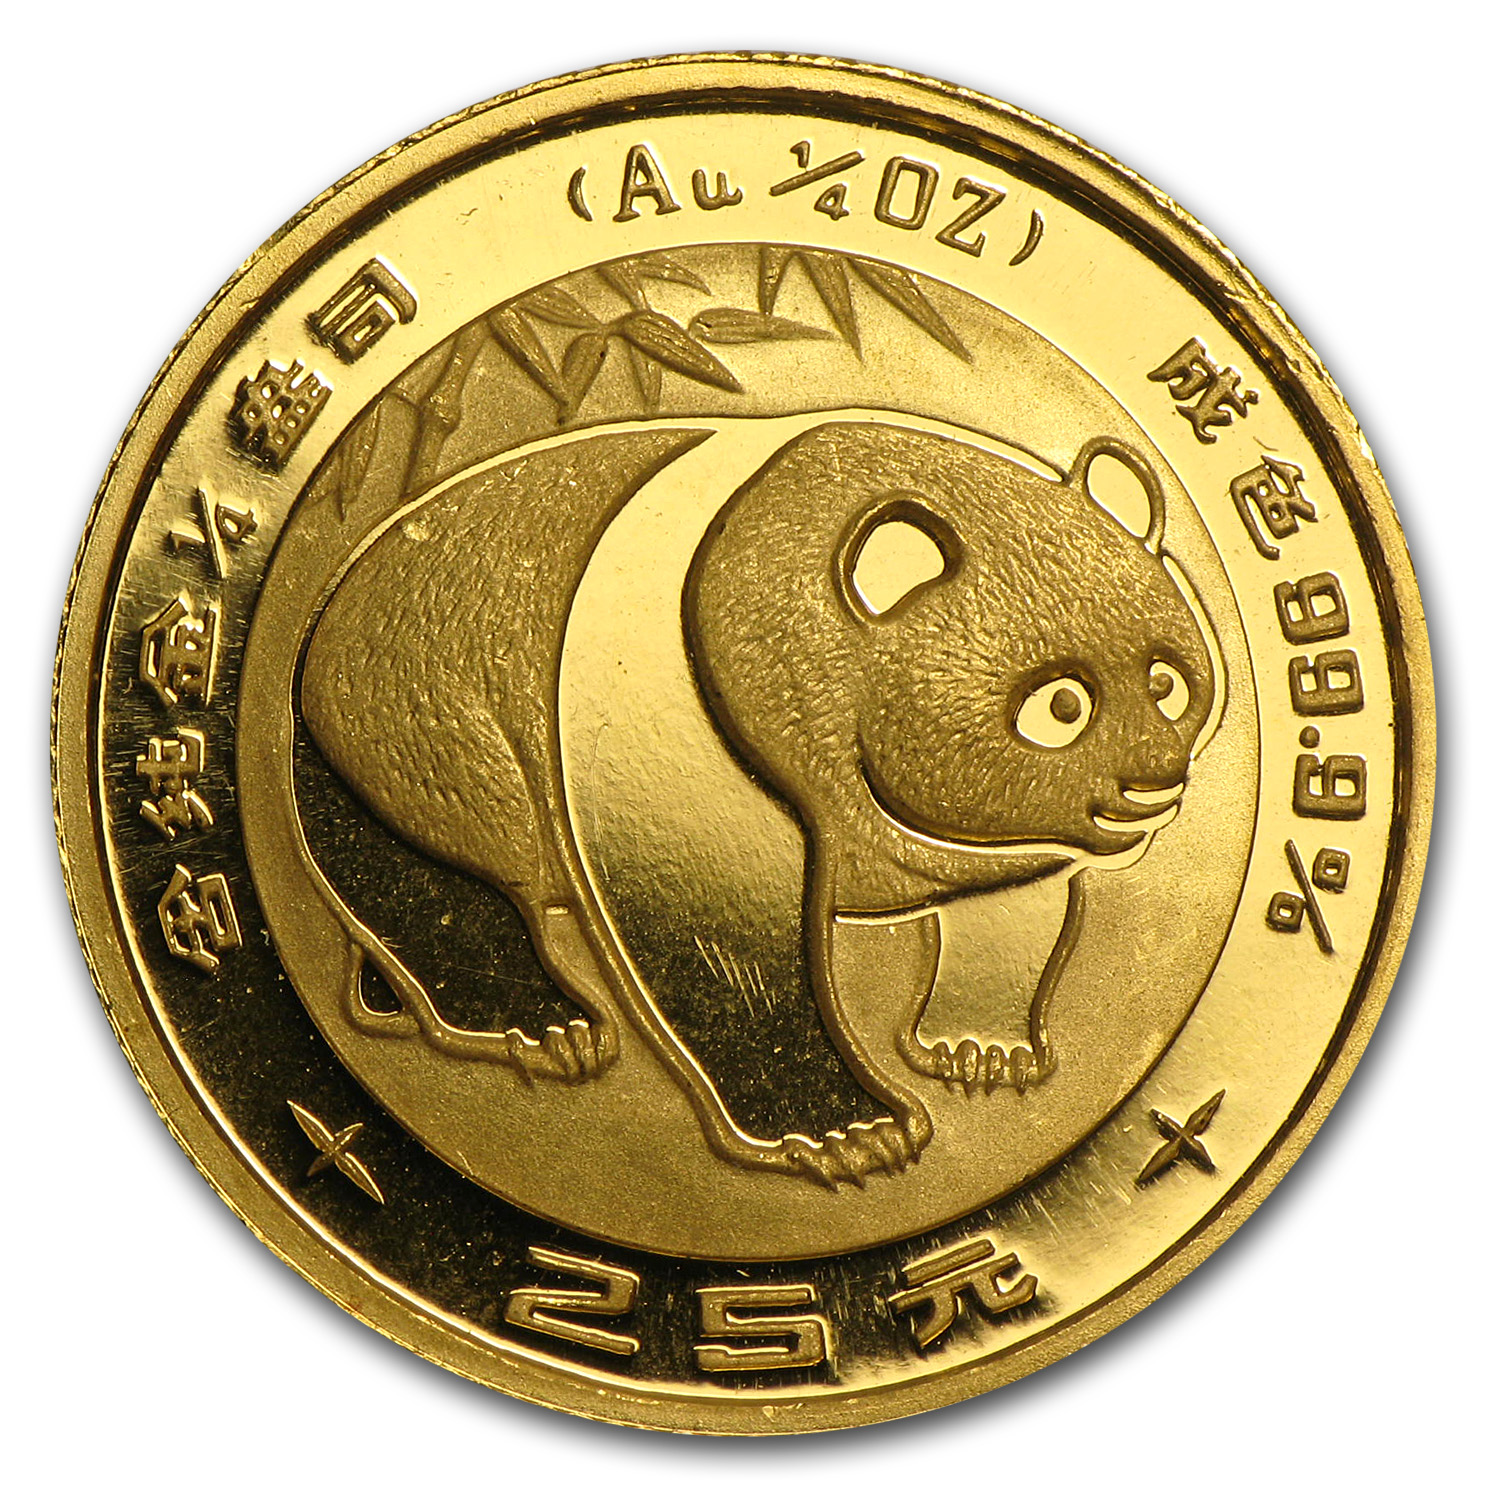 1983 China 1/4 oz Gold Panda BU (Not Sealed)